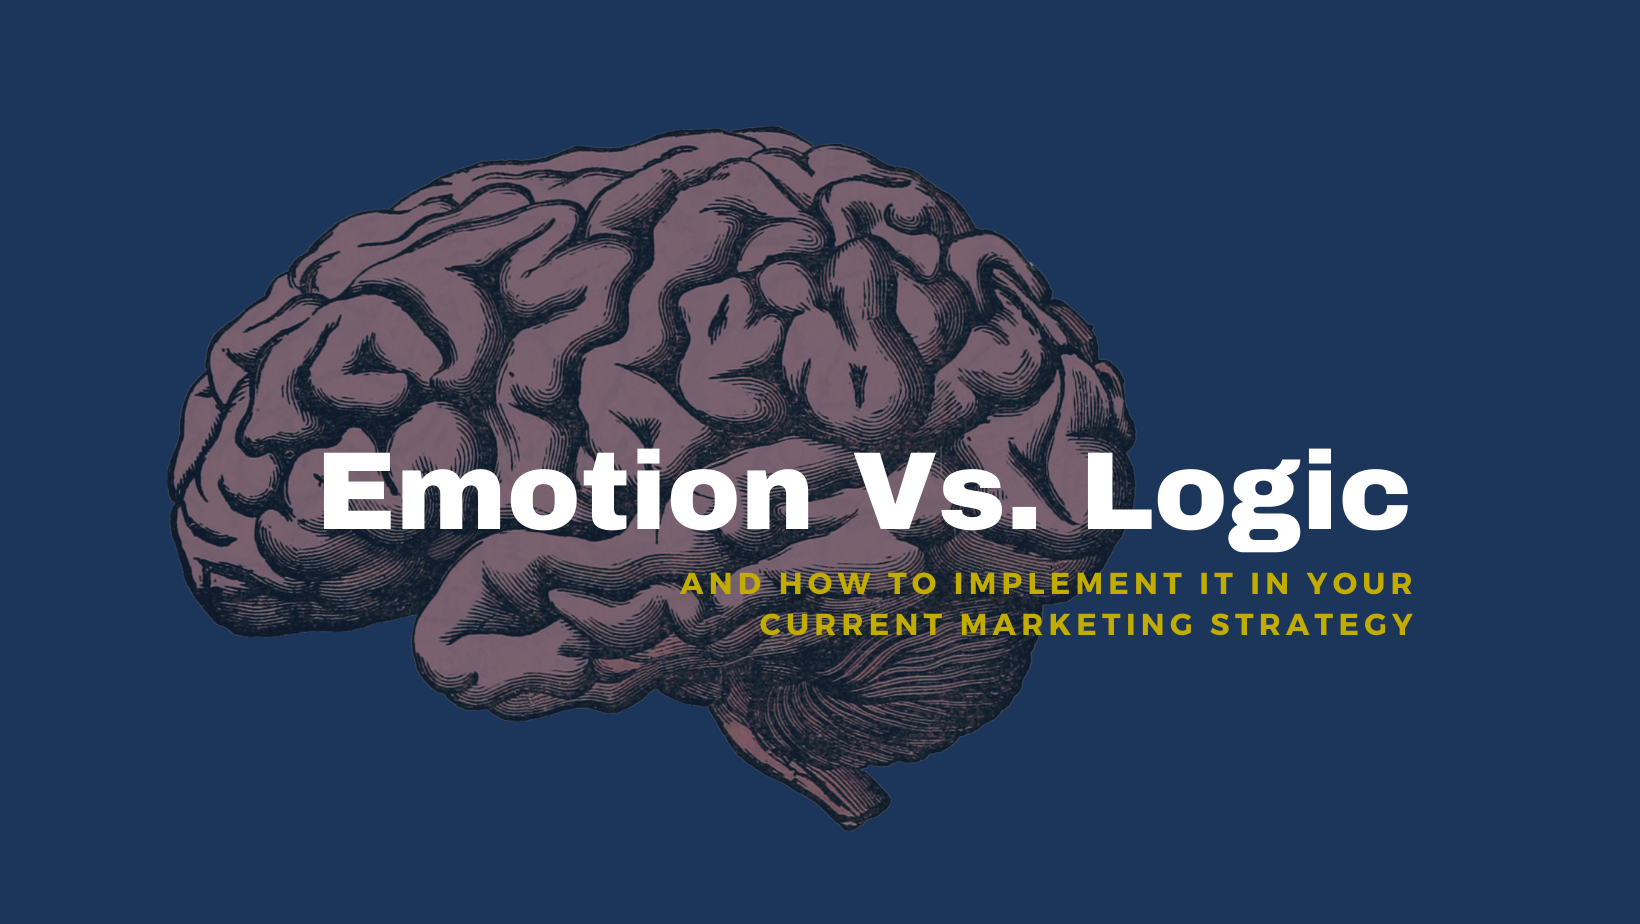 Appeal to emotion or logic with your marketing